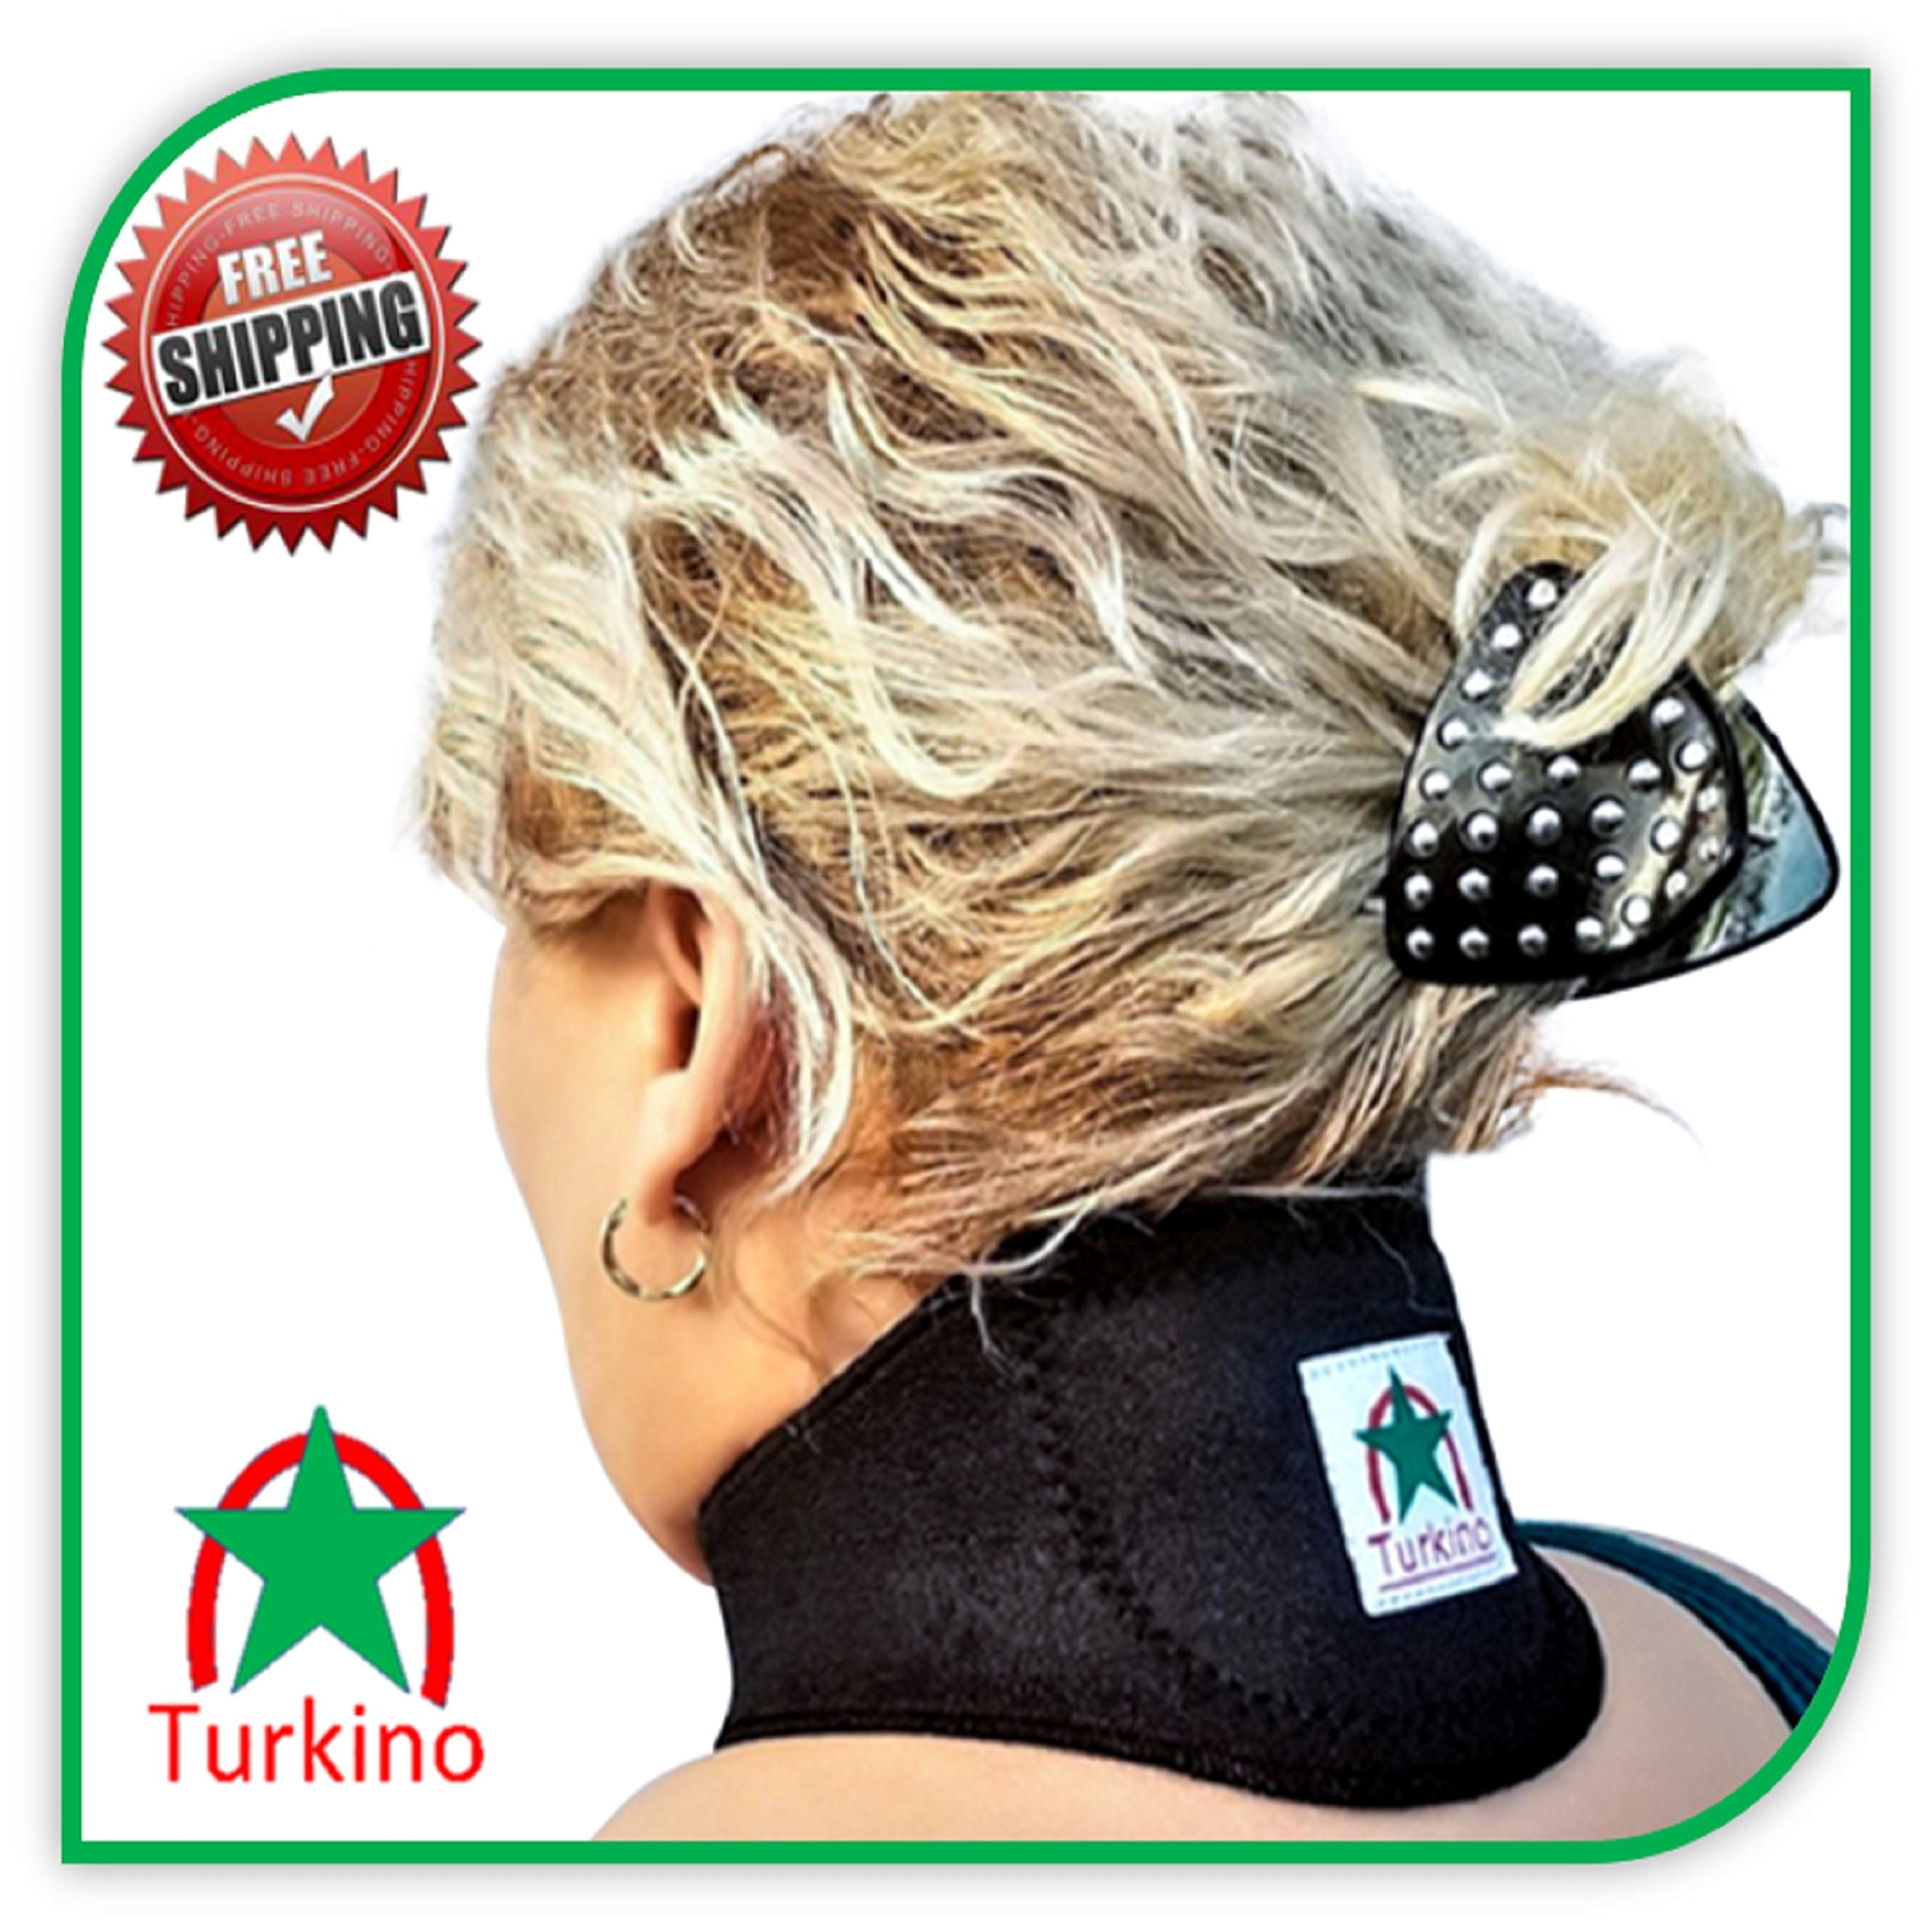 Neck Brace ~ New Black support Turkino Tourmaline Portable Device ~ Physical Therapy ~ Pain Relief, Arthritis, Depression, Stress, Headaches ~ Natural Remedy Cervical Collar Men, Women